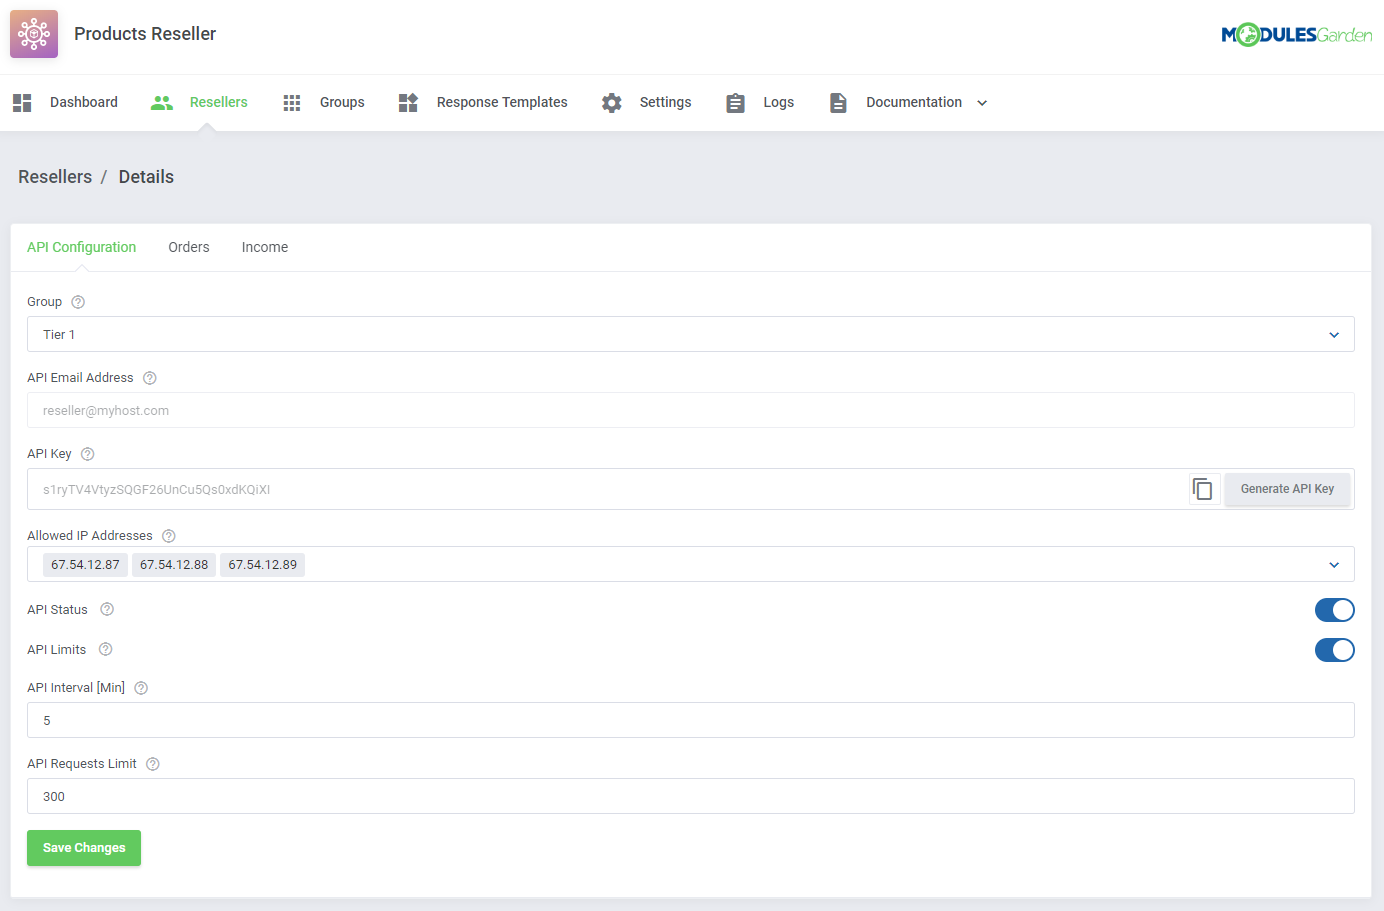 Products Reseller For WHMCS: Module Screenshot 4